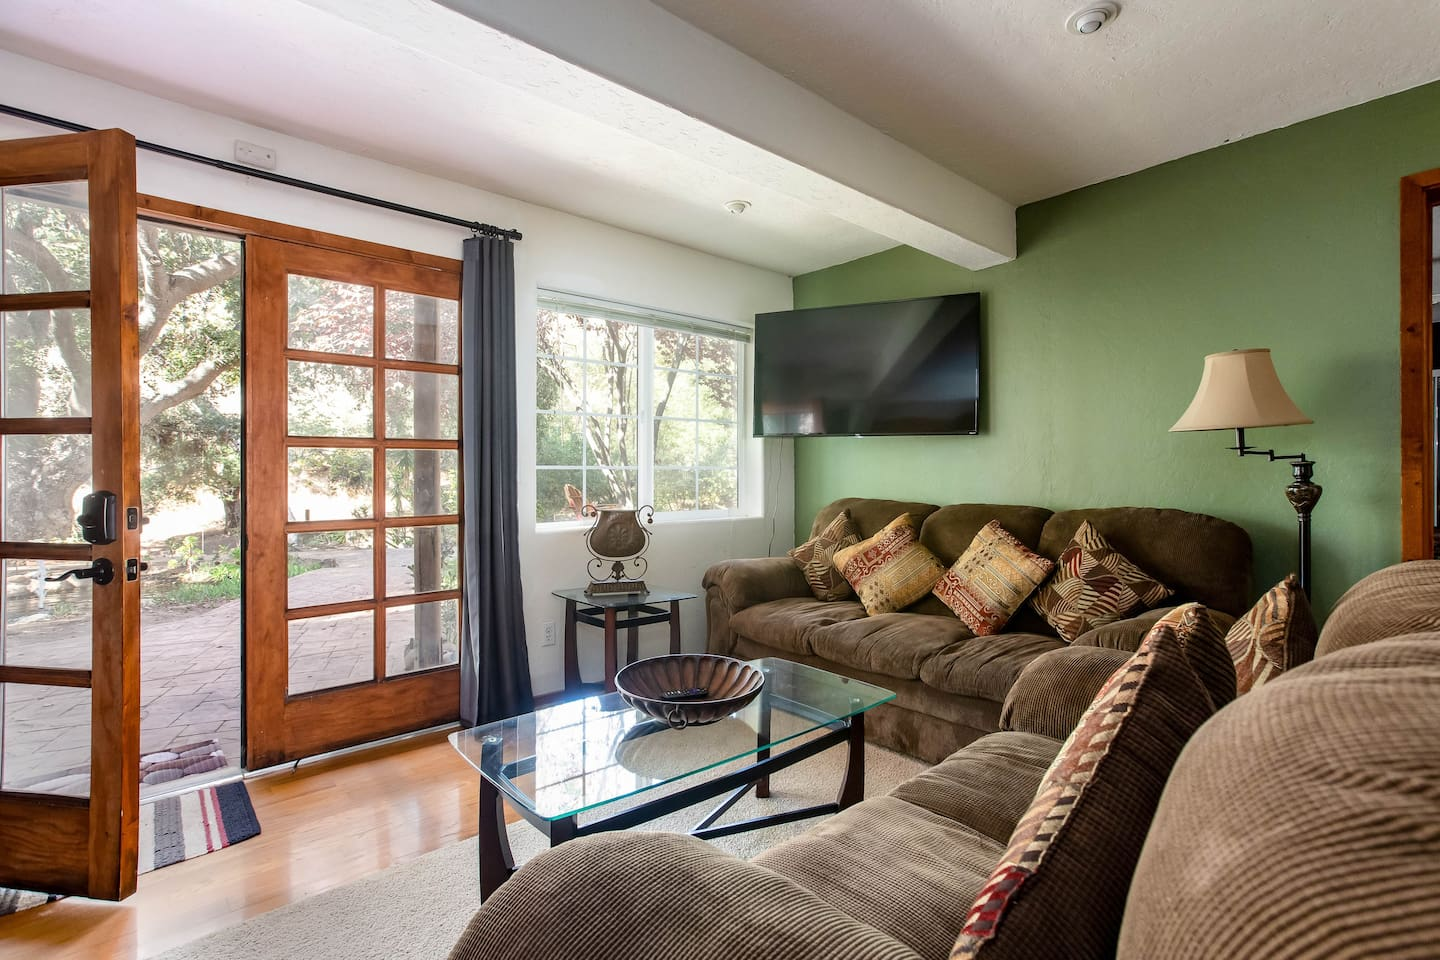 Welcome to Dragonfly Suite. Drenched in natural light and overlooking the spectacular view of the oak tree canopy, waterfall, fountain and stream in this private backyard. (Notice the smart TV and french doors)